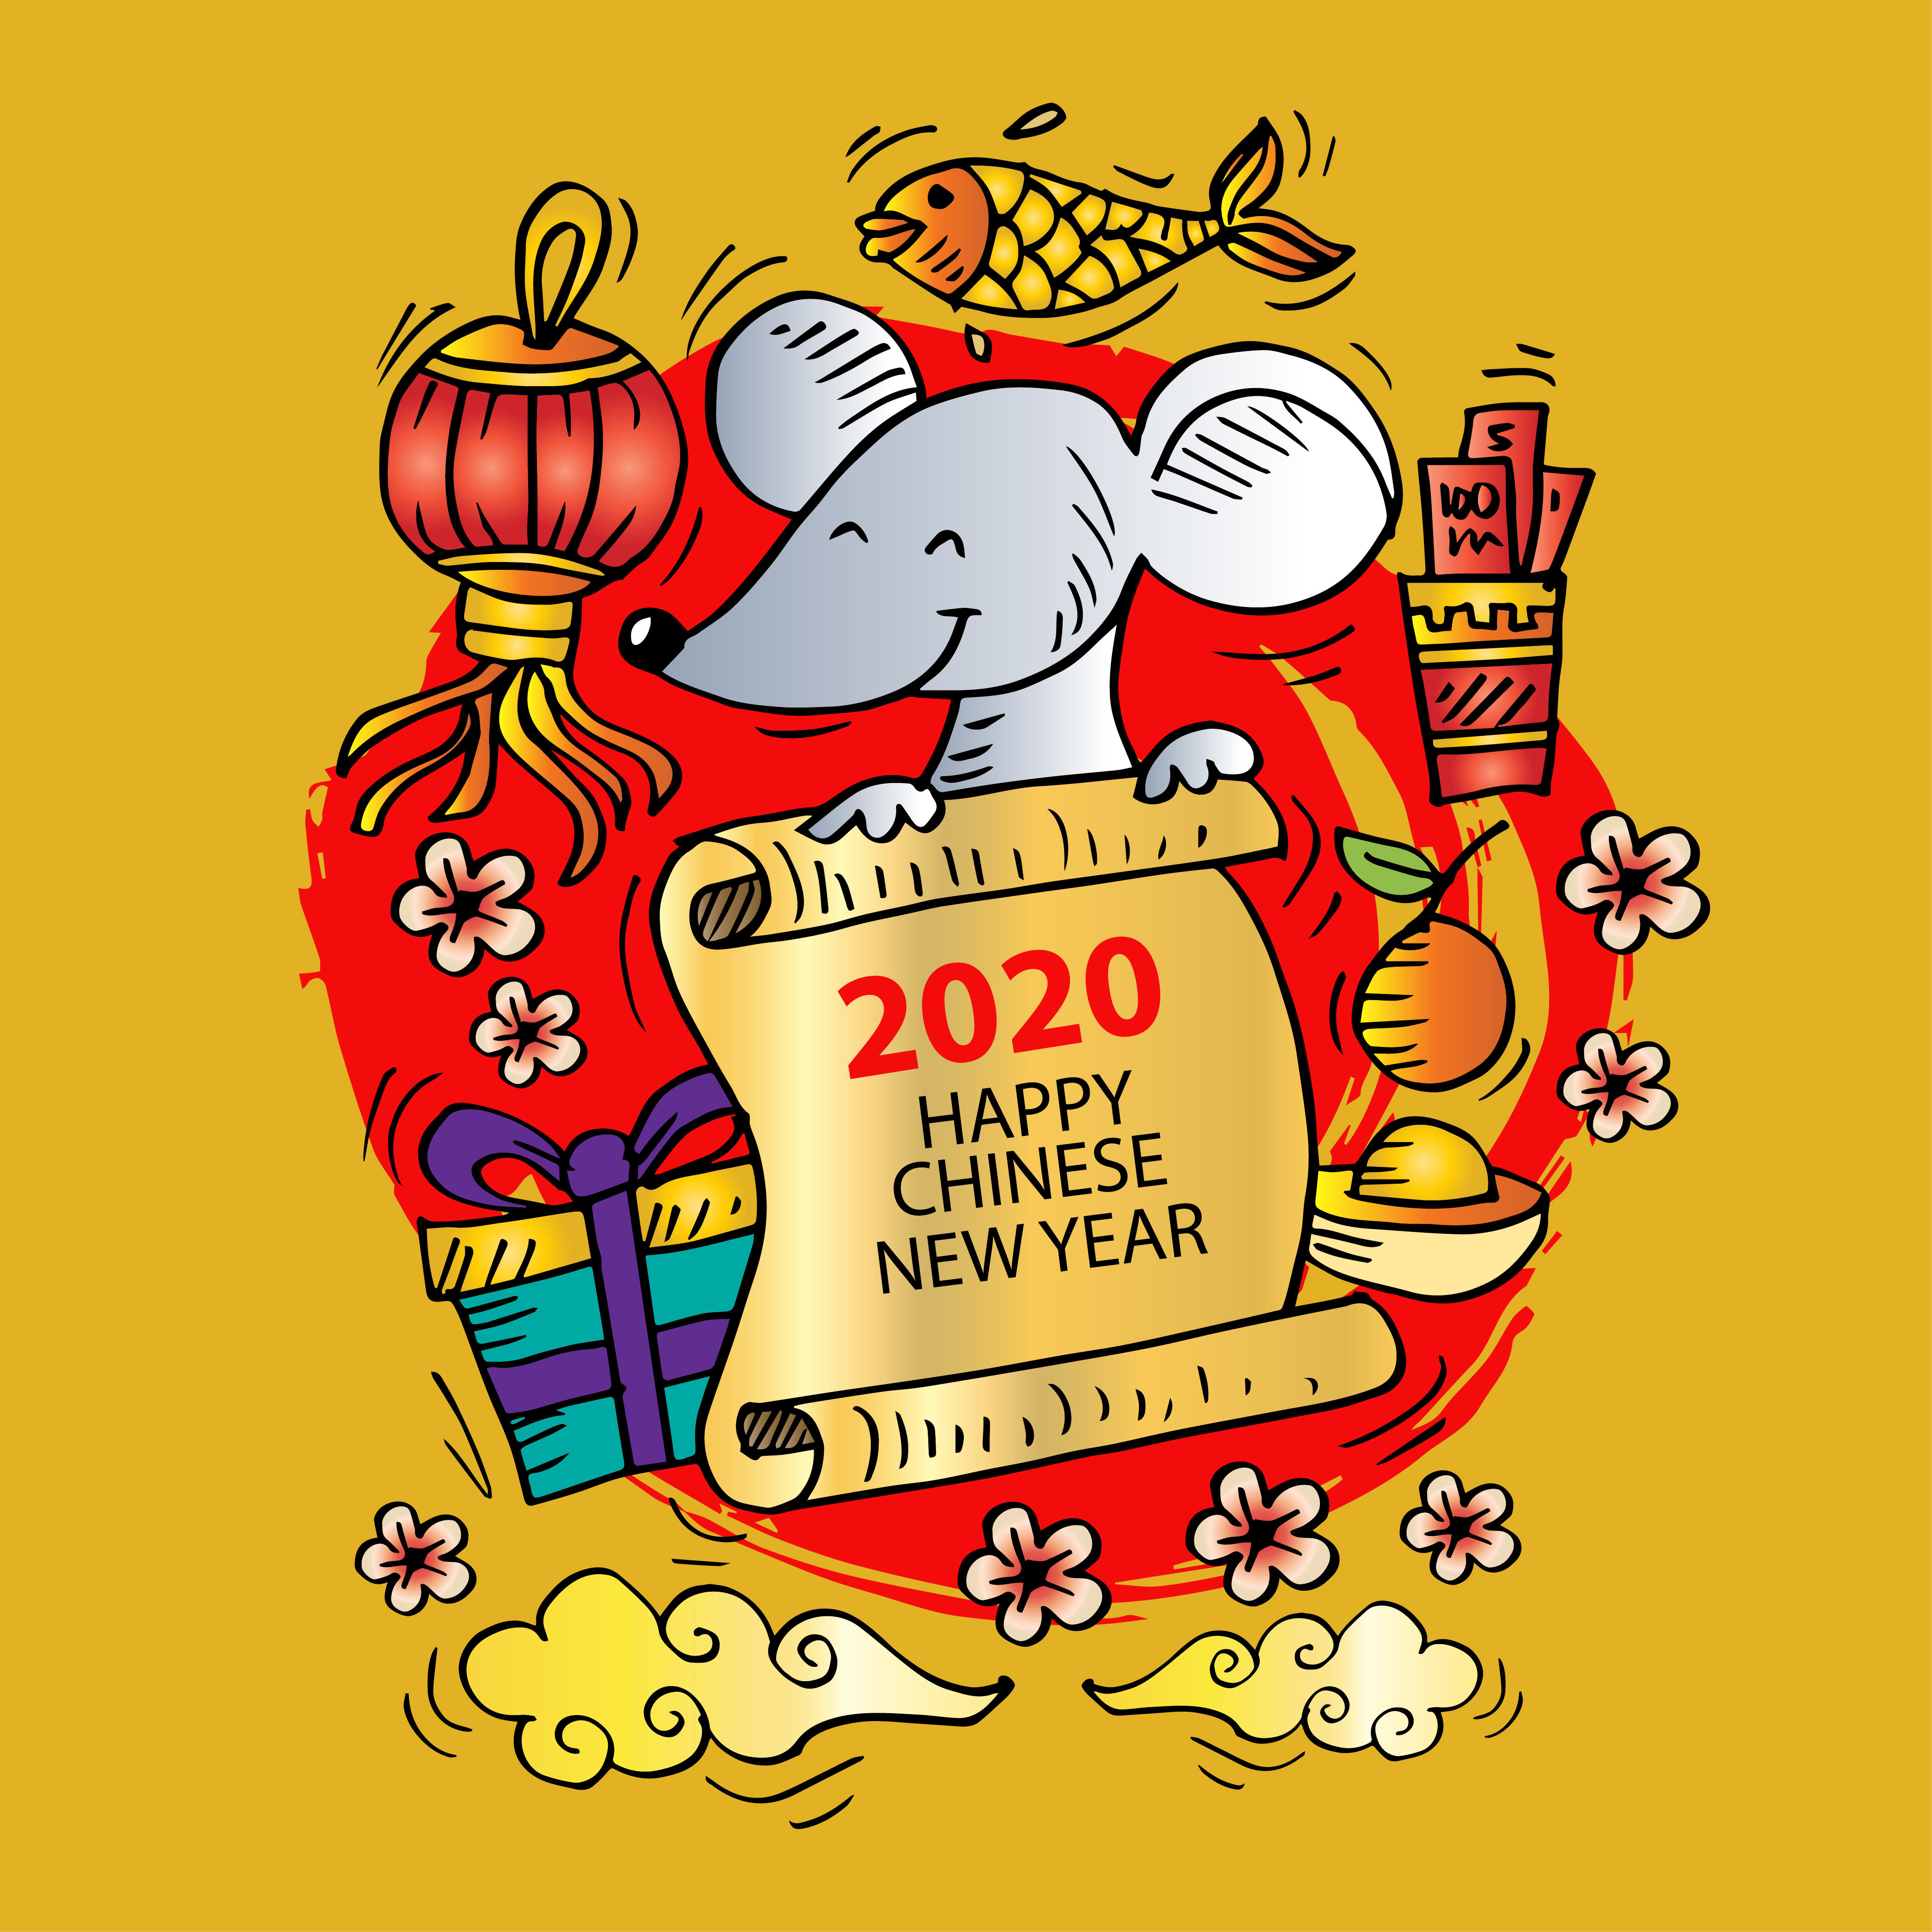 2020 Chinese New Year Greeting Card Download Free Vectors Clipart Graphics Vector Art